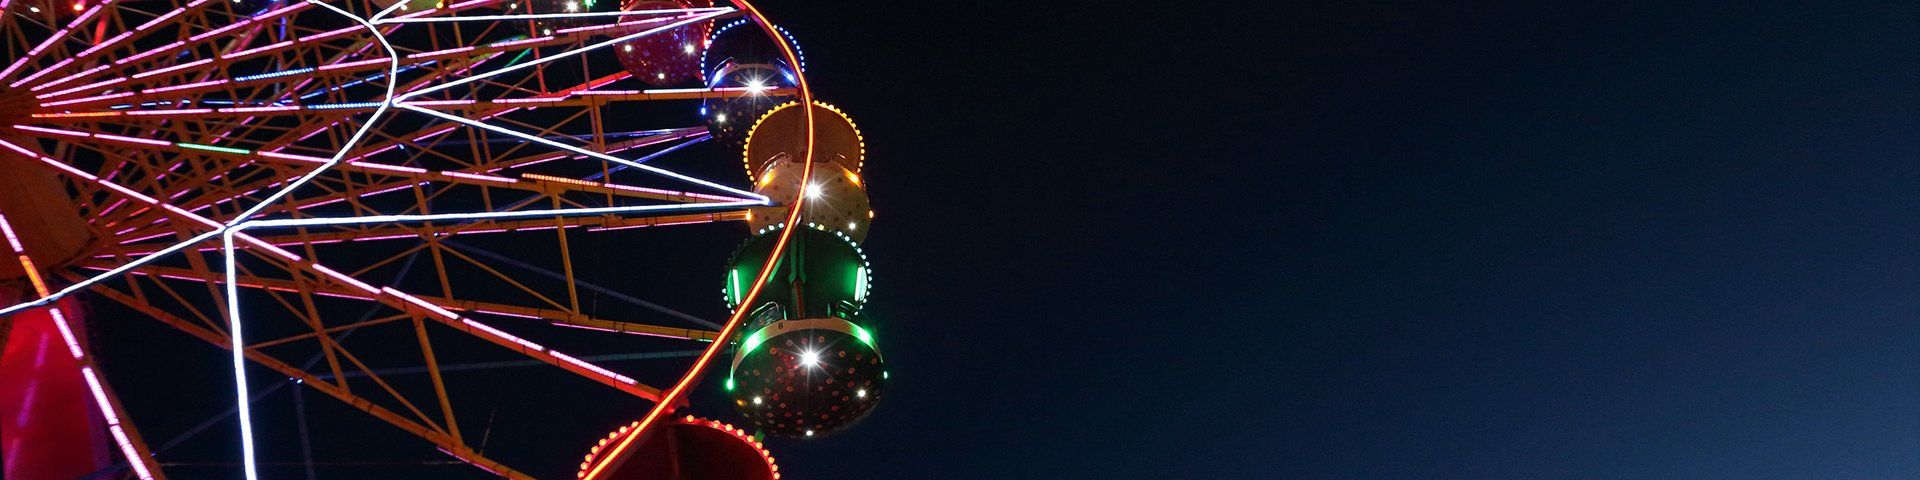 A ferris wheel illuminated against the night sky